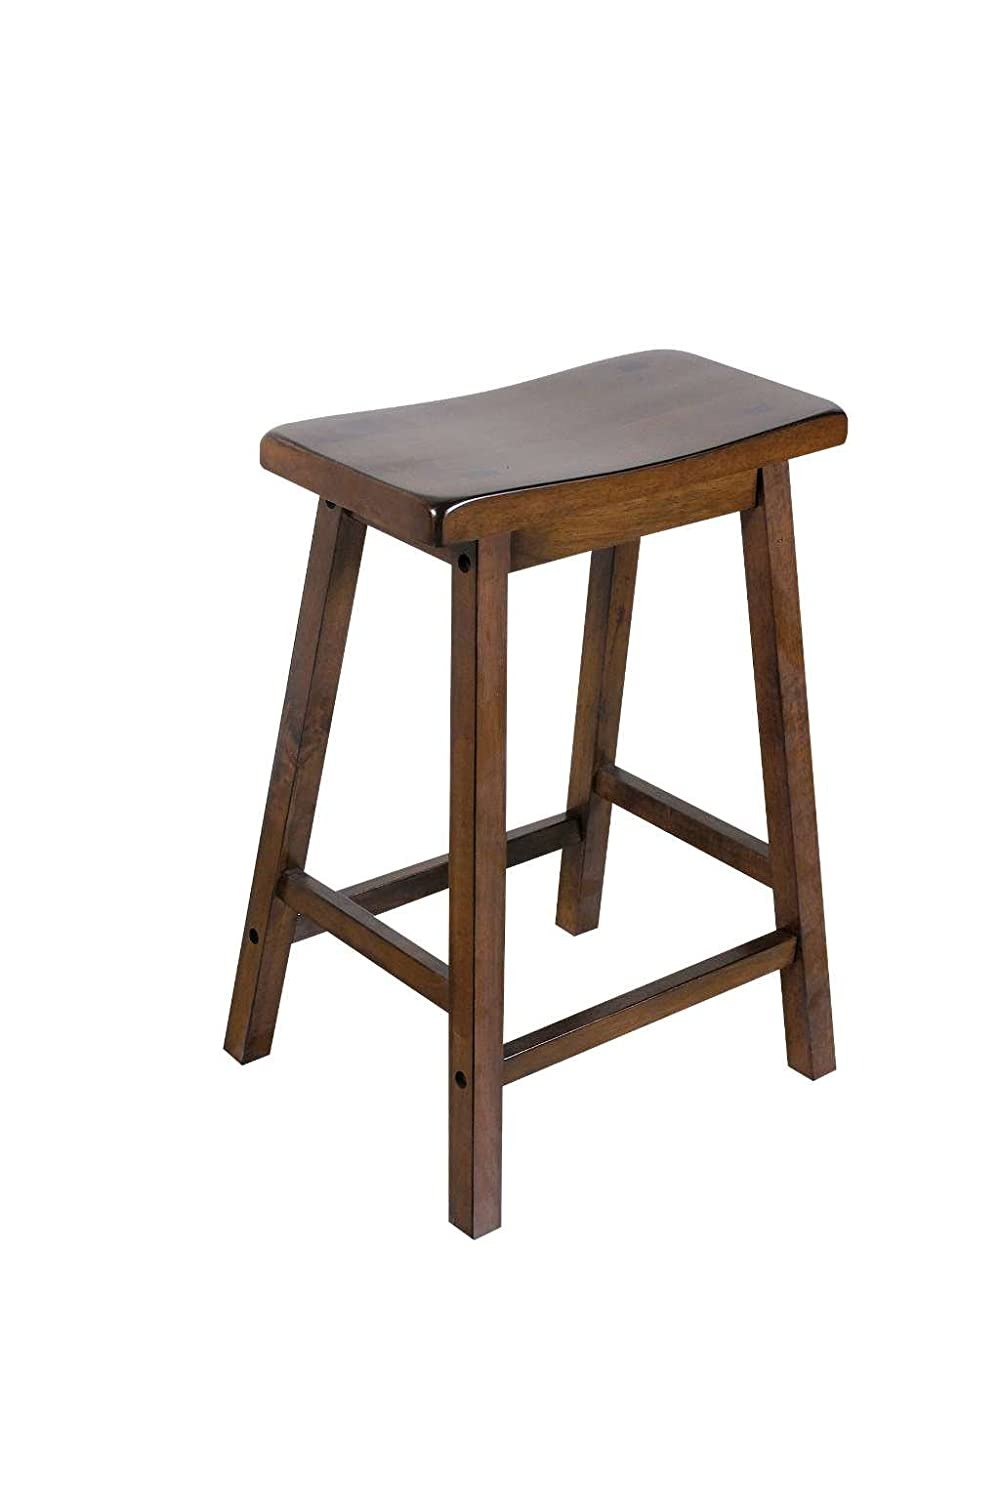 ACME 07304 Set of 2 Walnut Finish Barstool, 24H 24H